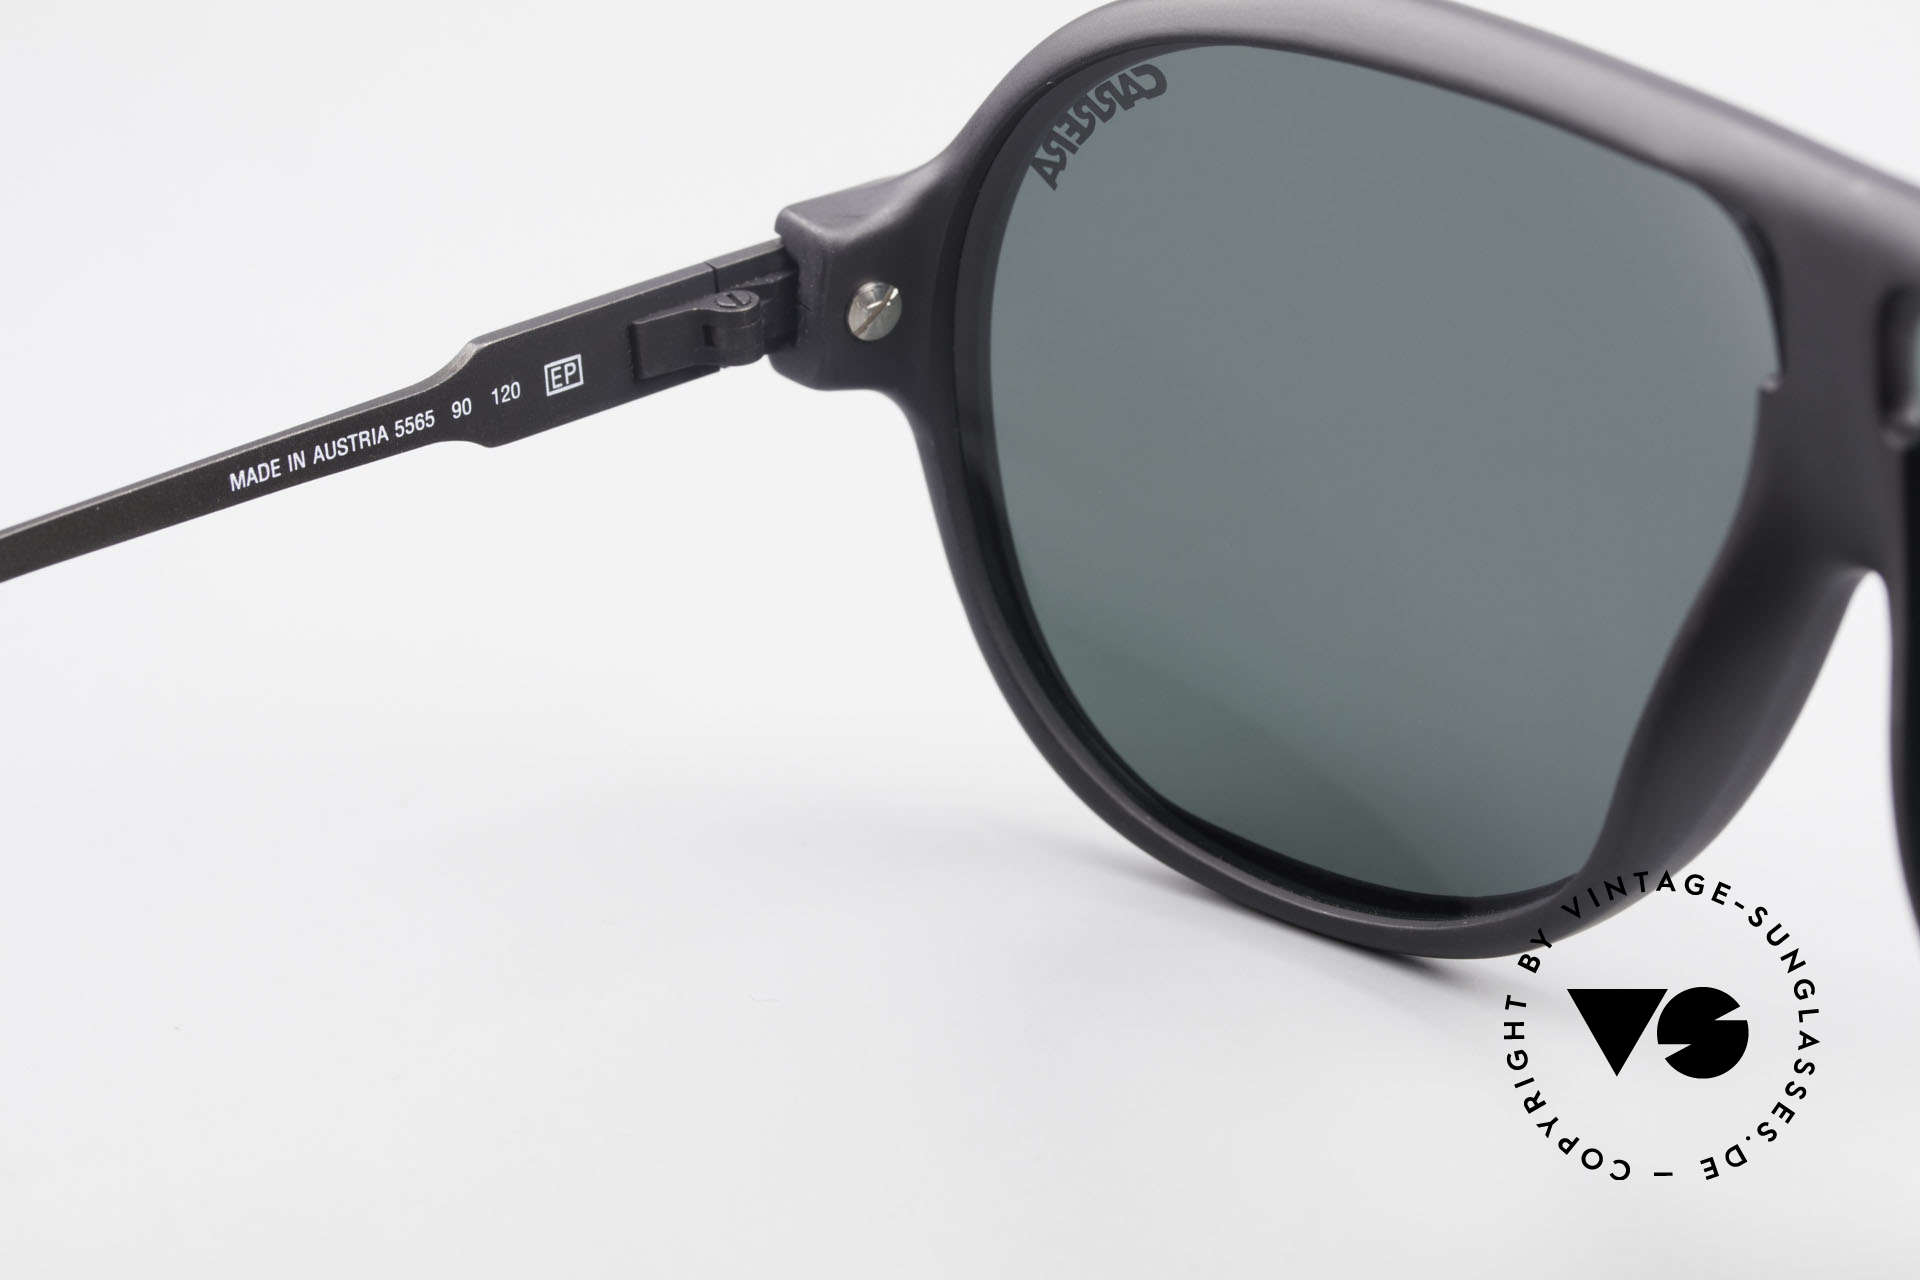 Carrera 5565 Old 1980's Vintage Sunglasses, classic black frame with dark green sun lenses (100% UV), Made for Men and Women